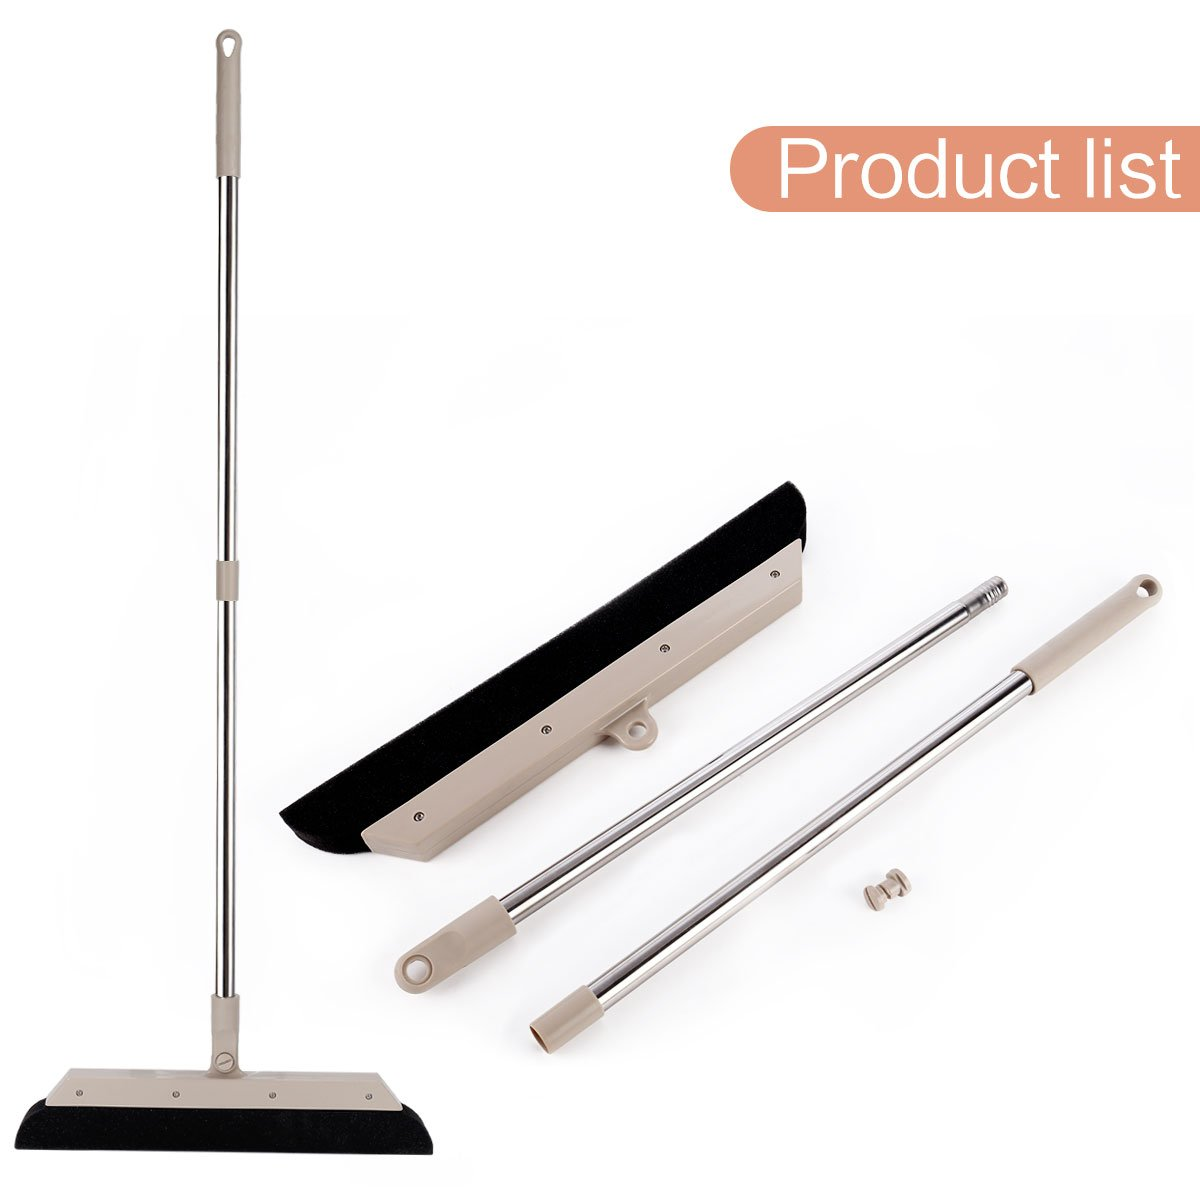 MEIBEI Sponge Broom Dust Cleaner, 37.4'' Adjustable Long Handle with 13.8'' Wide Blade, Perfect for Wood Tile Marble Carpet & Glass by MEIBEI (Image #9)